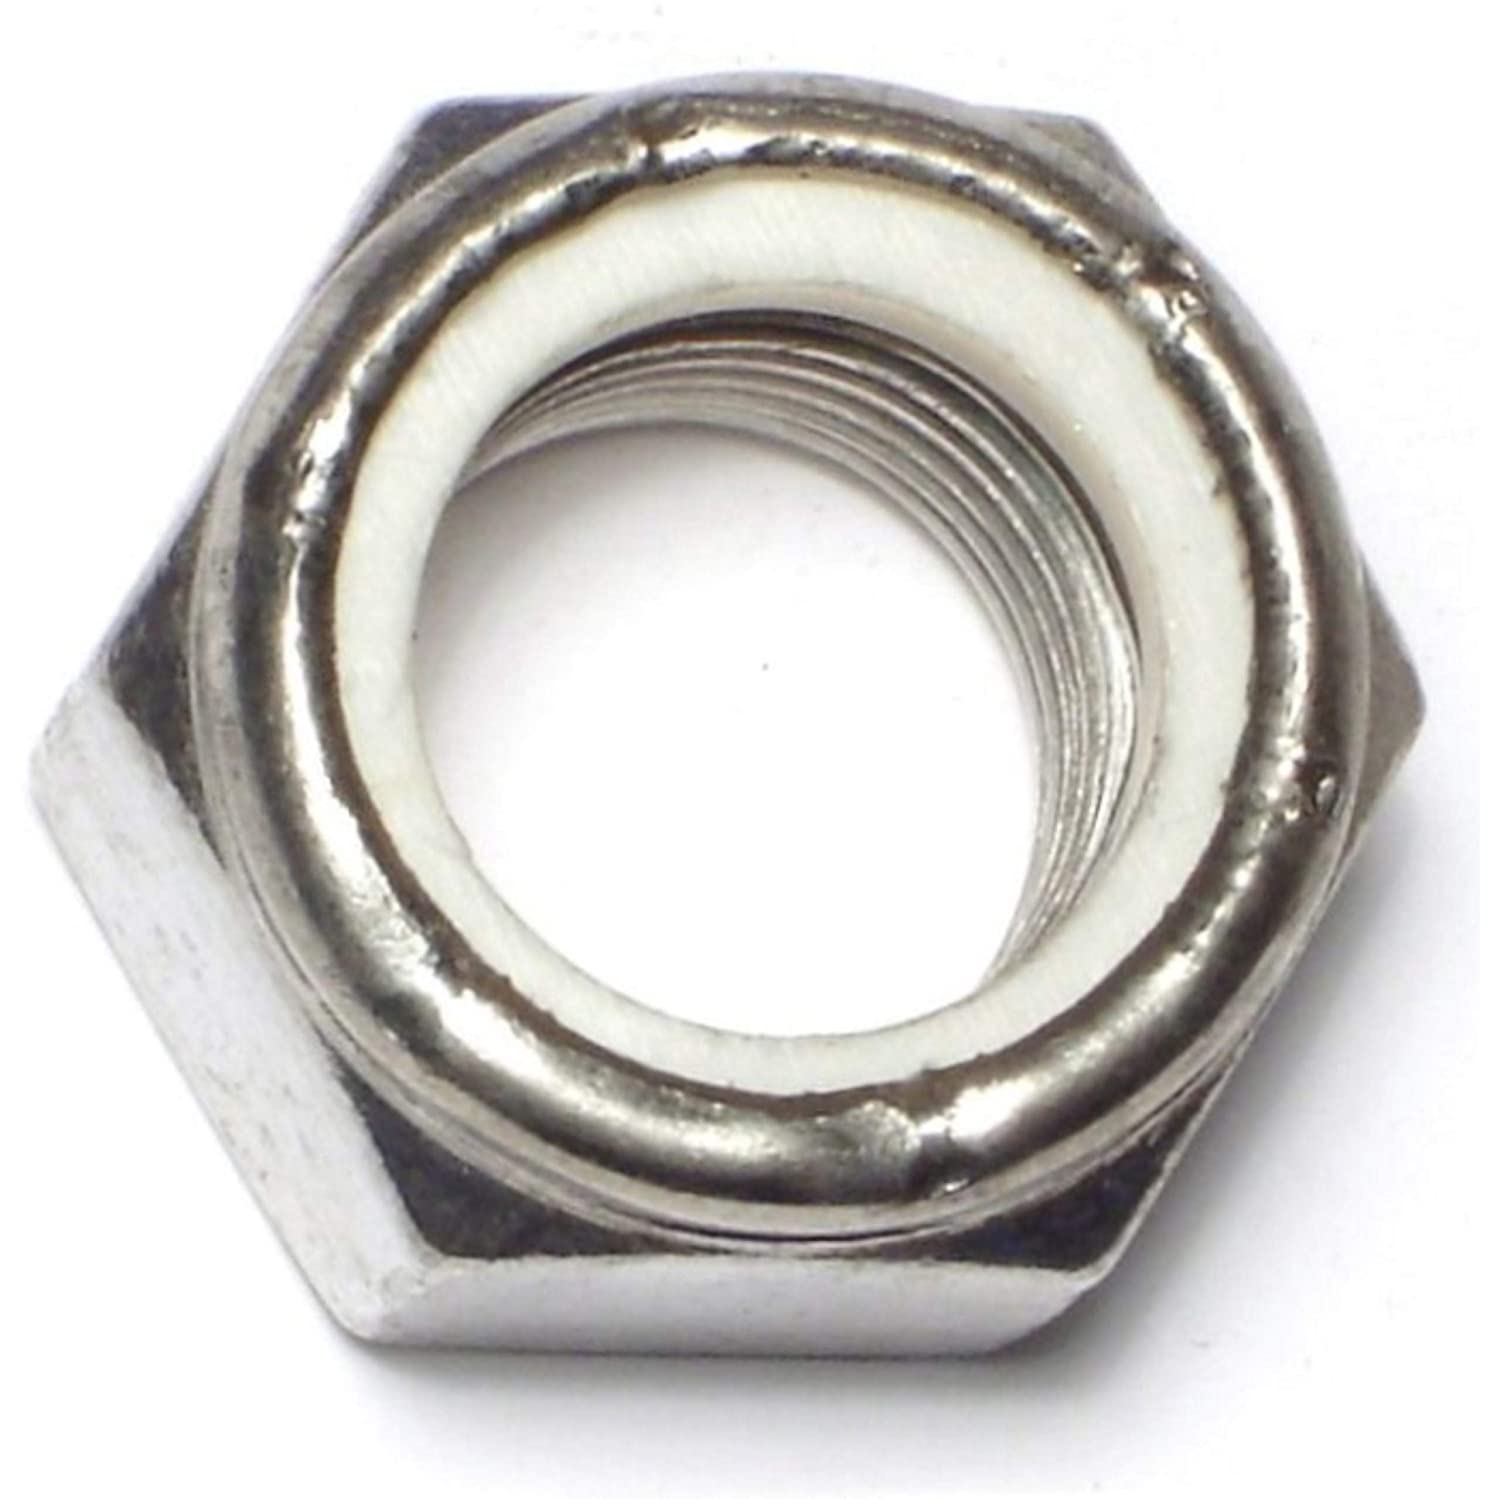 Piece-3 Hard-to-Find Fastener 014973192297 Coarse Lock Nut 7//8-9